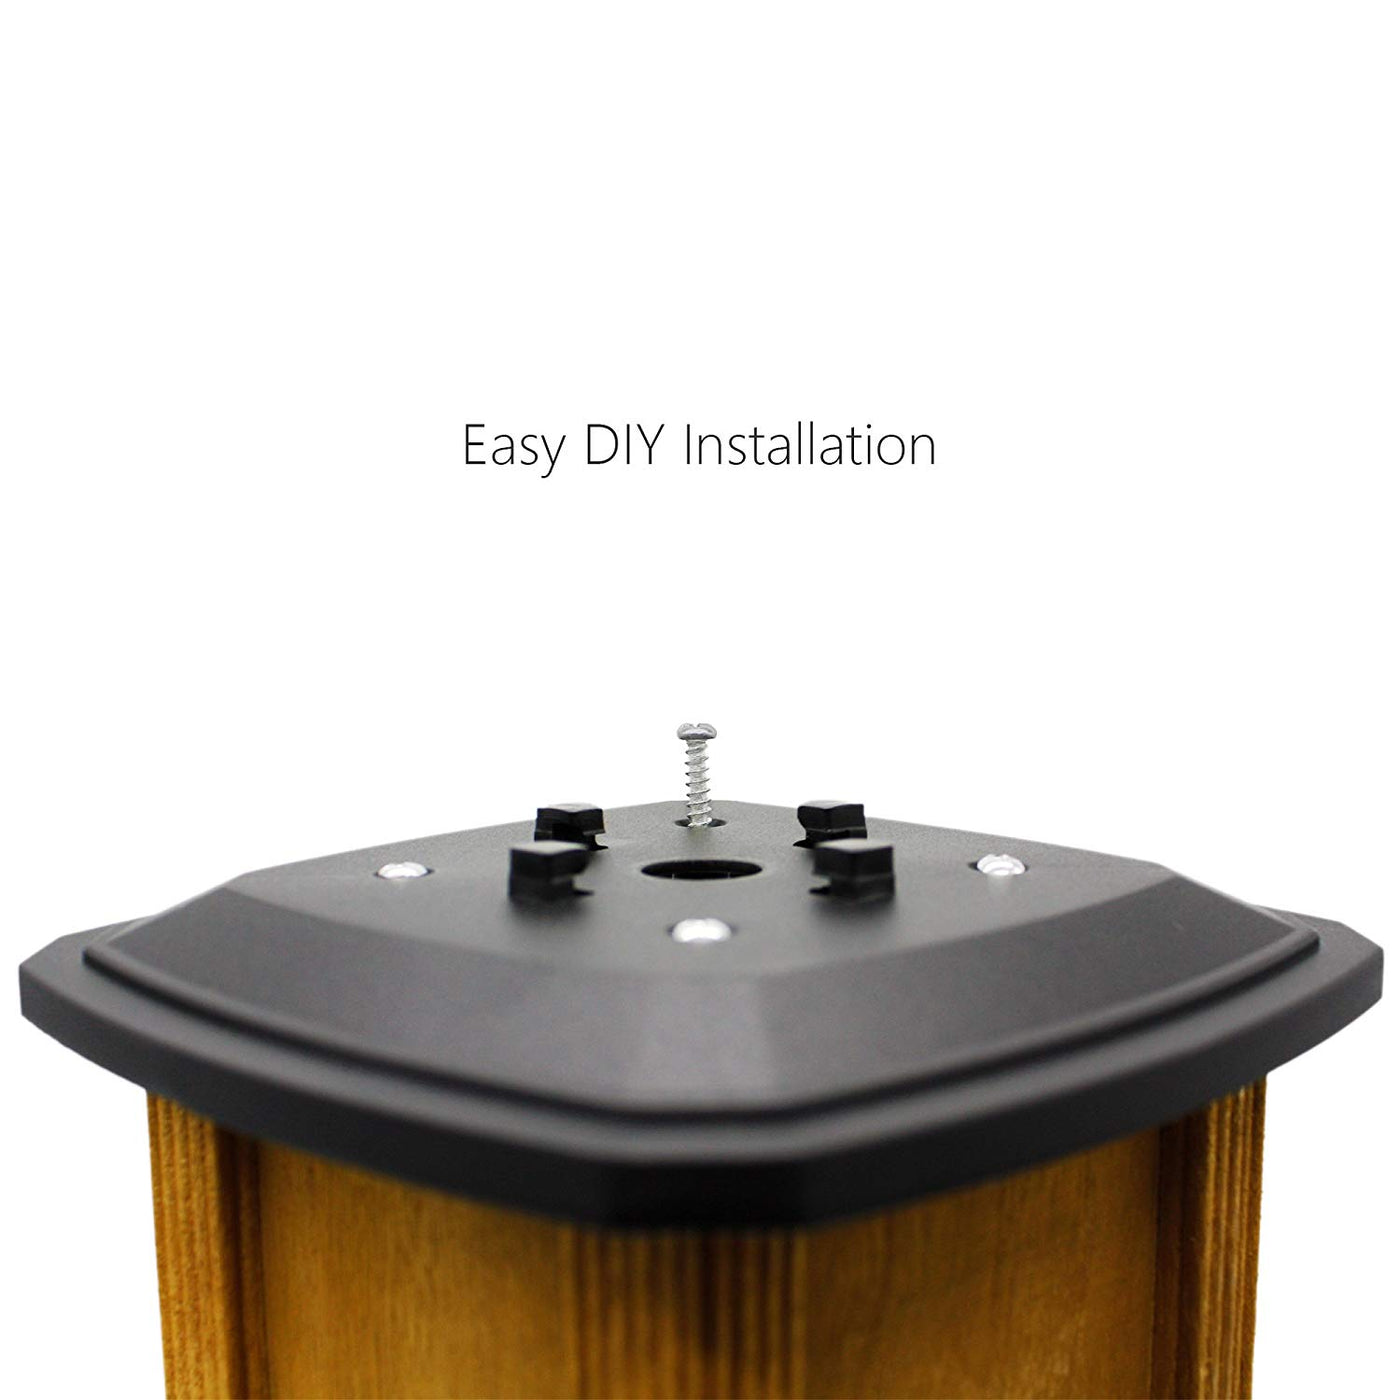 Davinci Solar Post Lights ... Outdoor Post Cap Light for Fence Deck or Patio